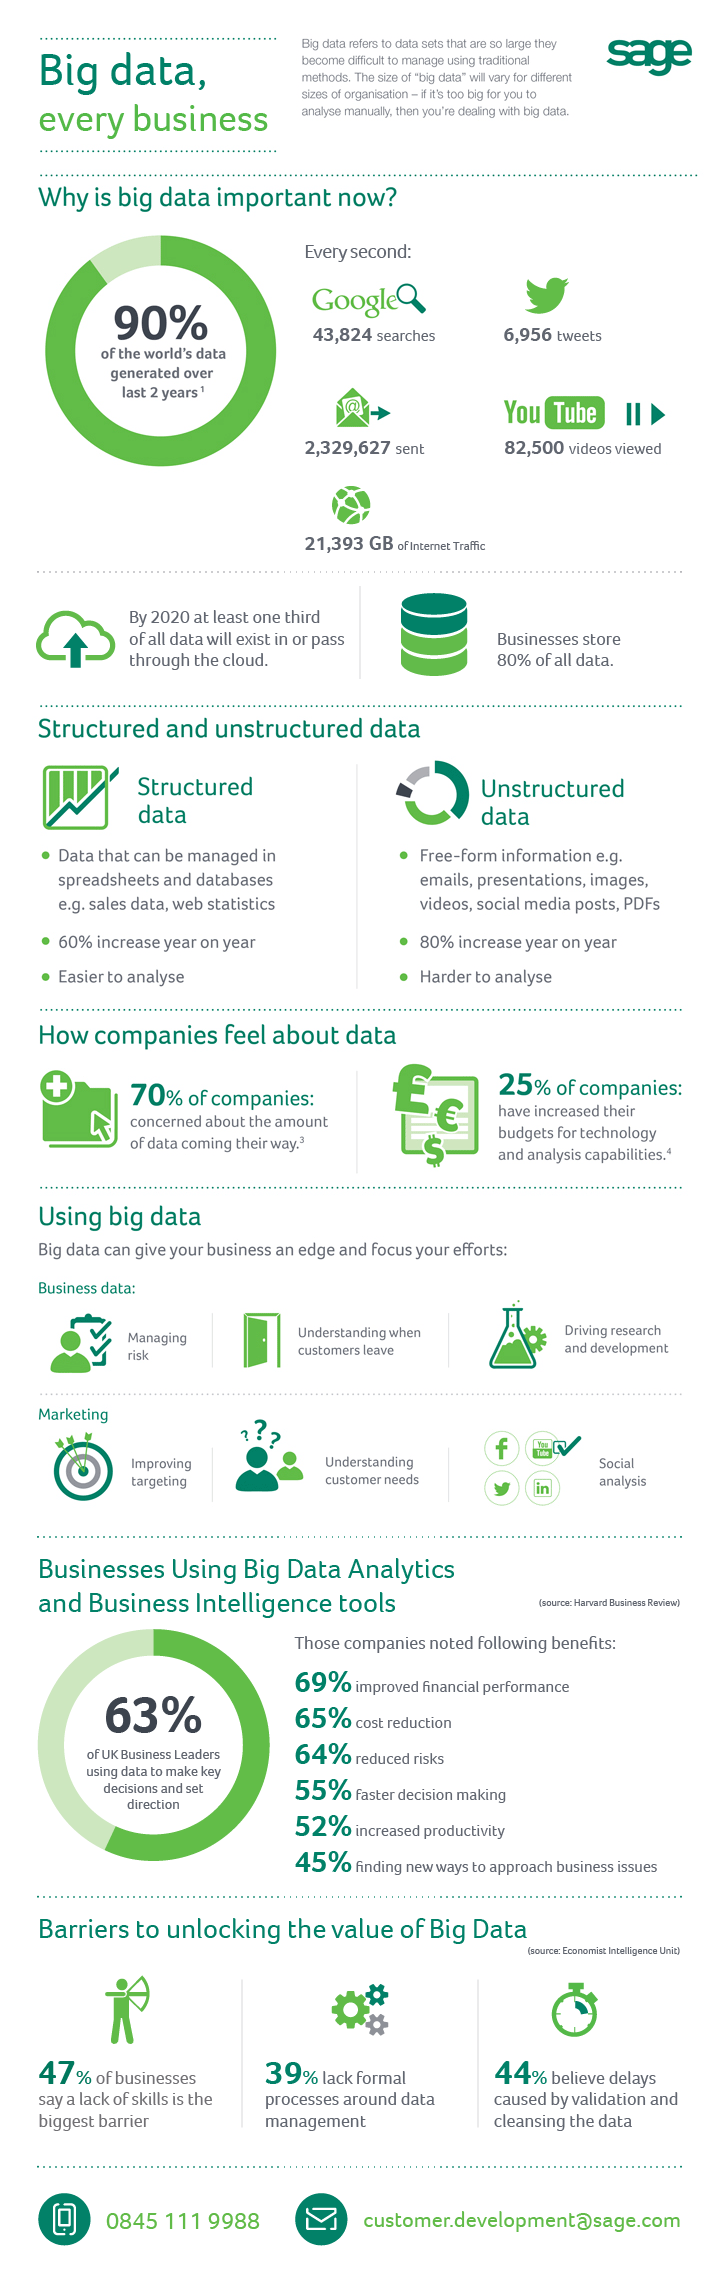 Sage - Big Data infographic